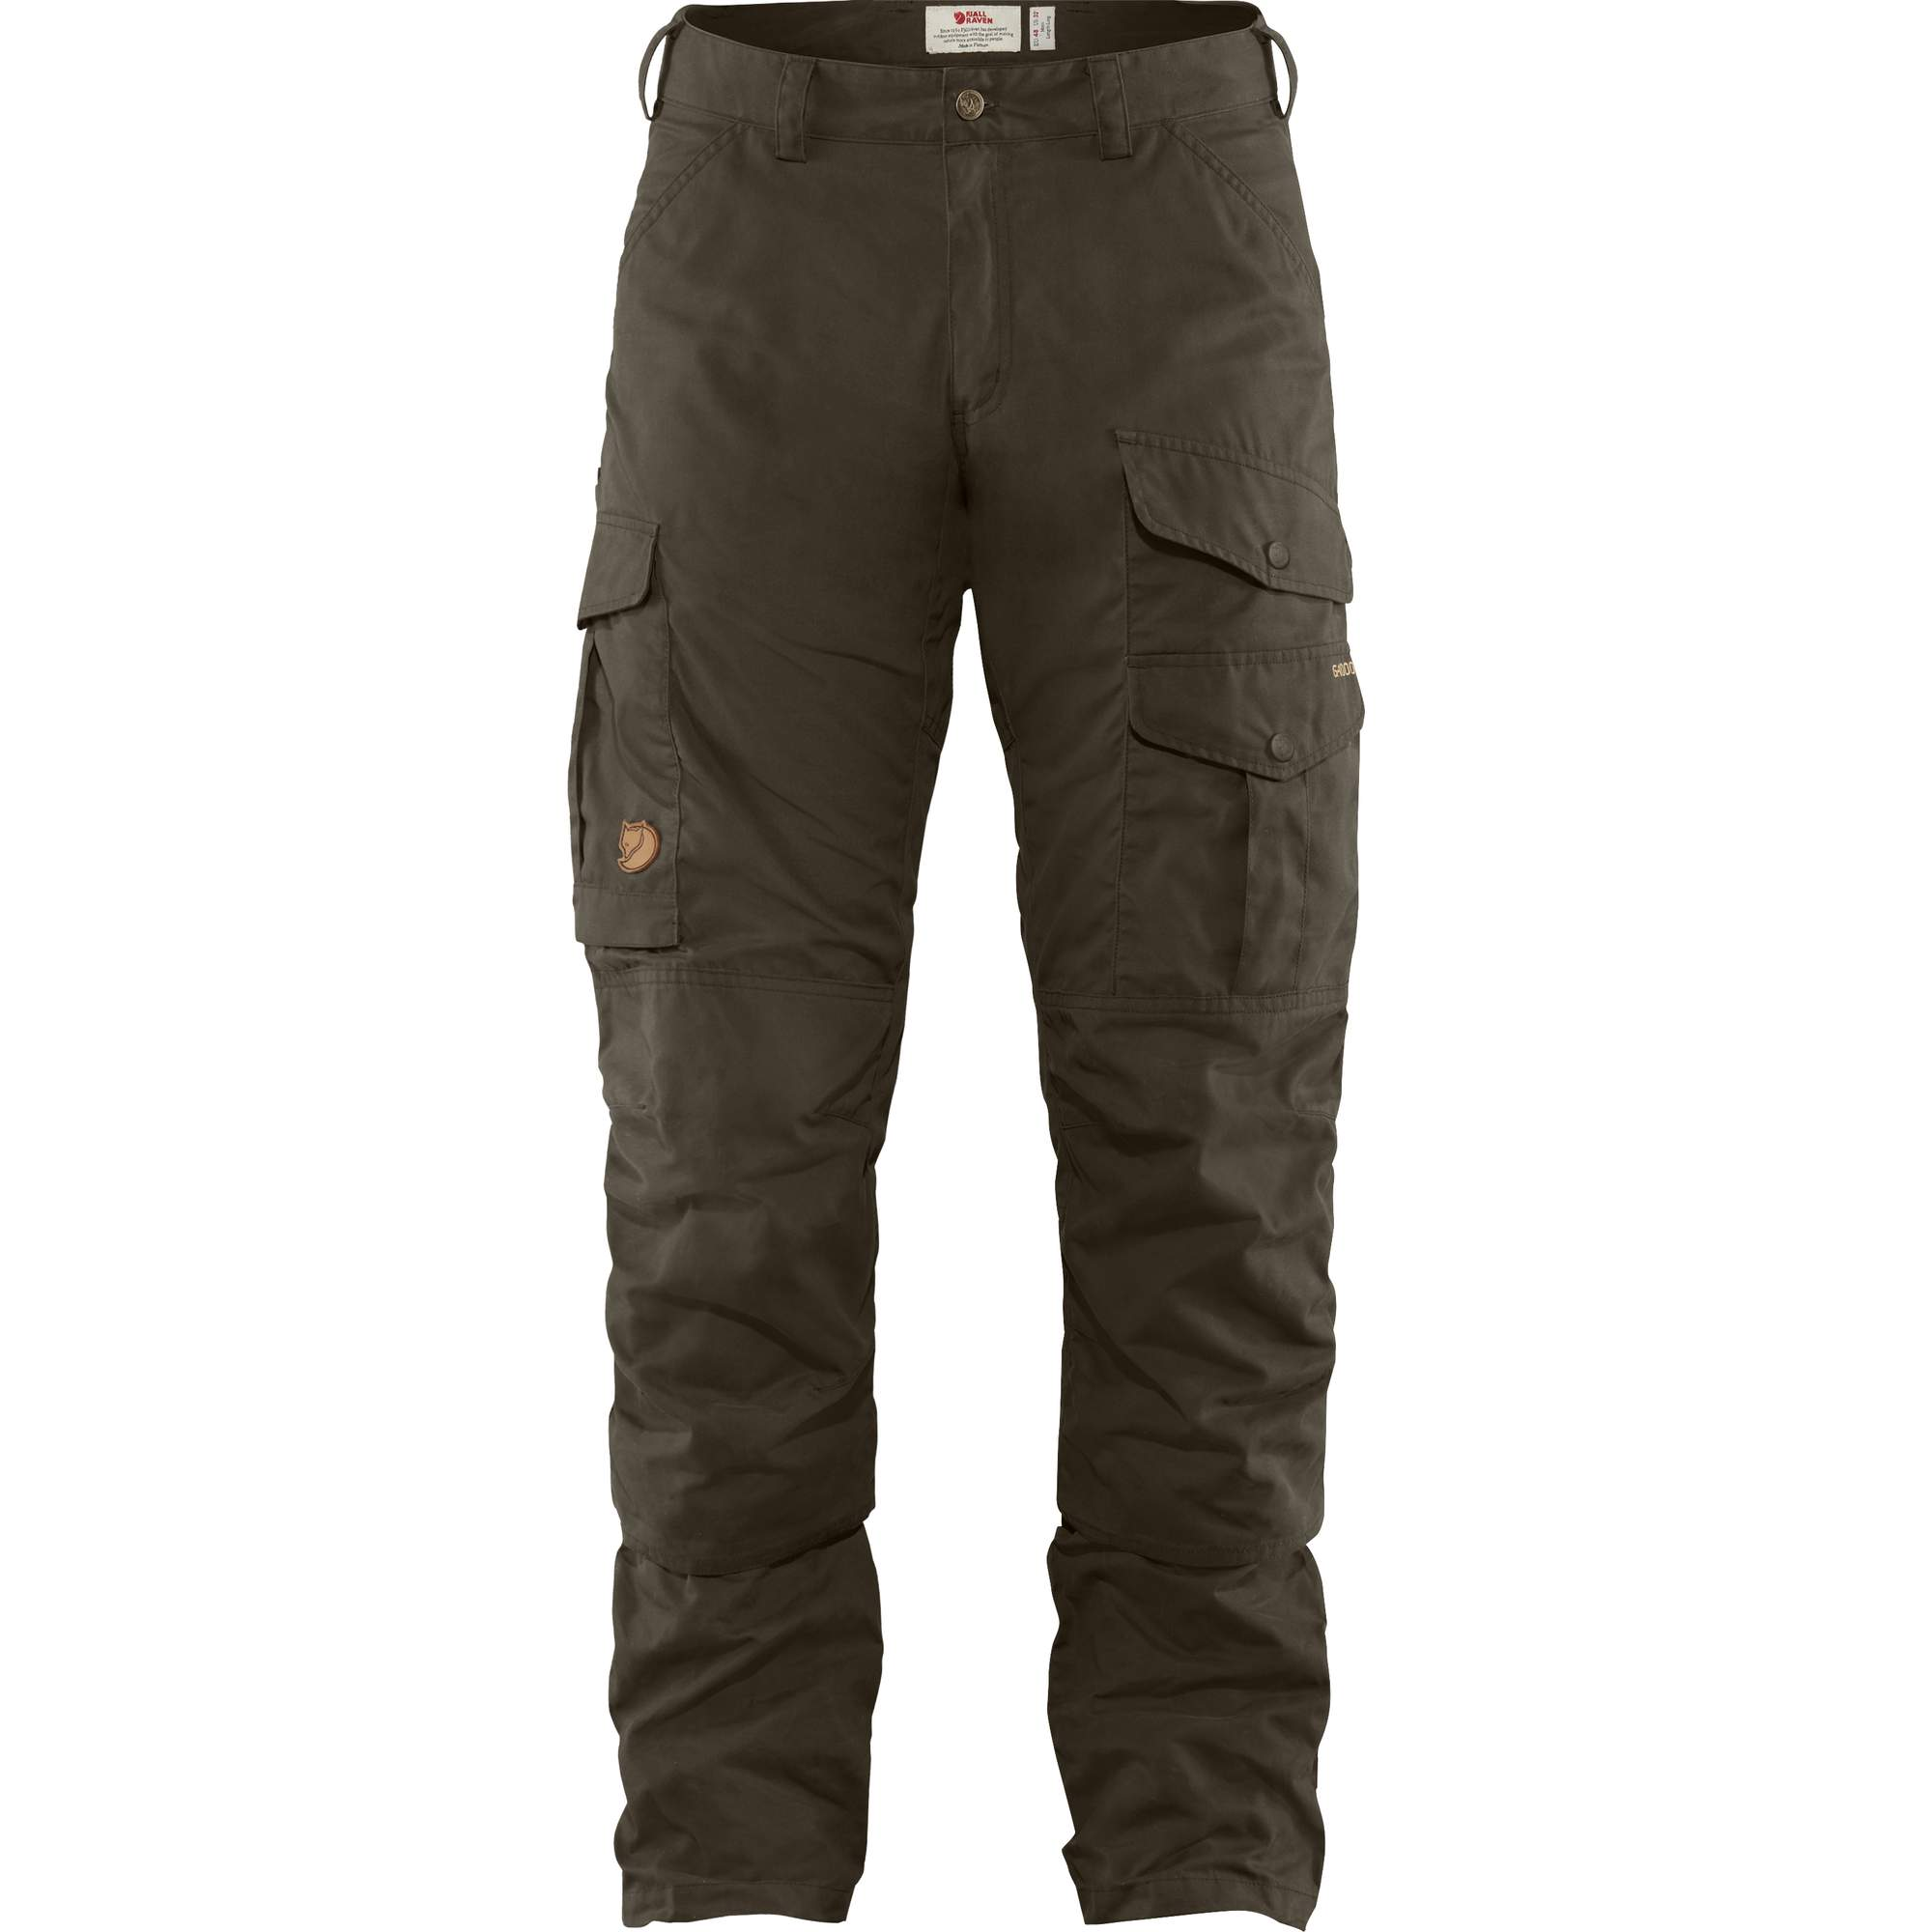 FJÄLL RÄVEN Barents Pro Hunting Trousers